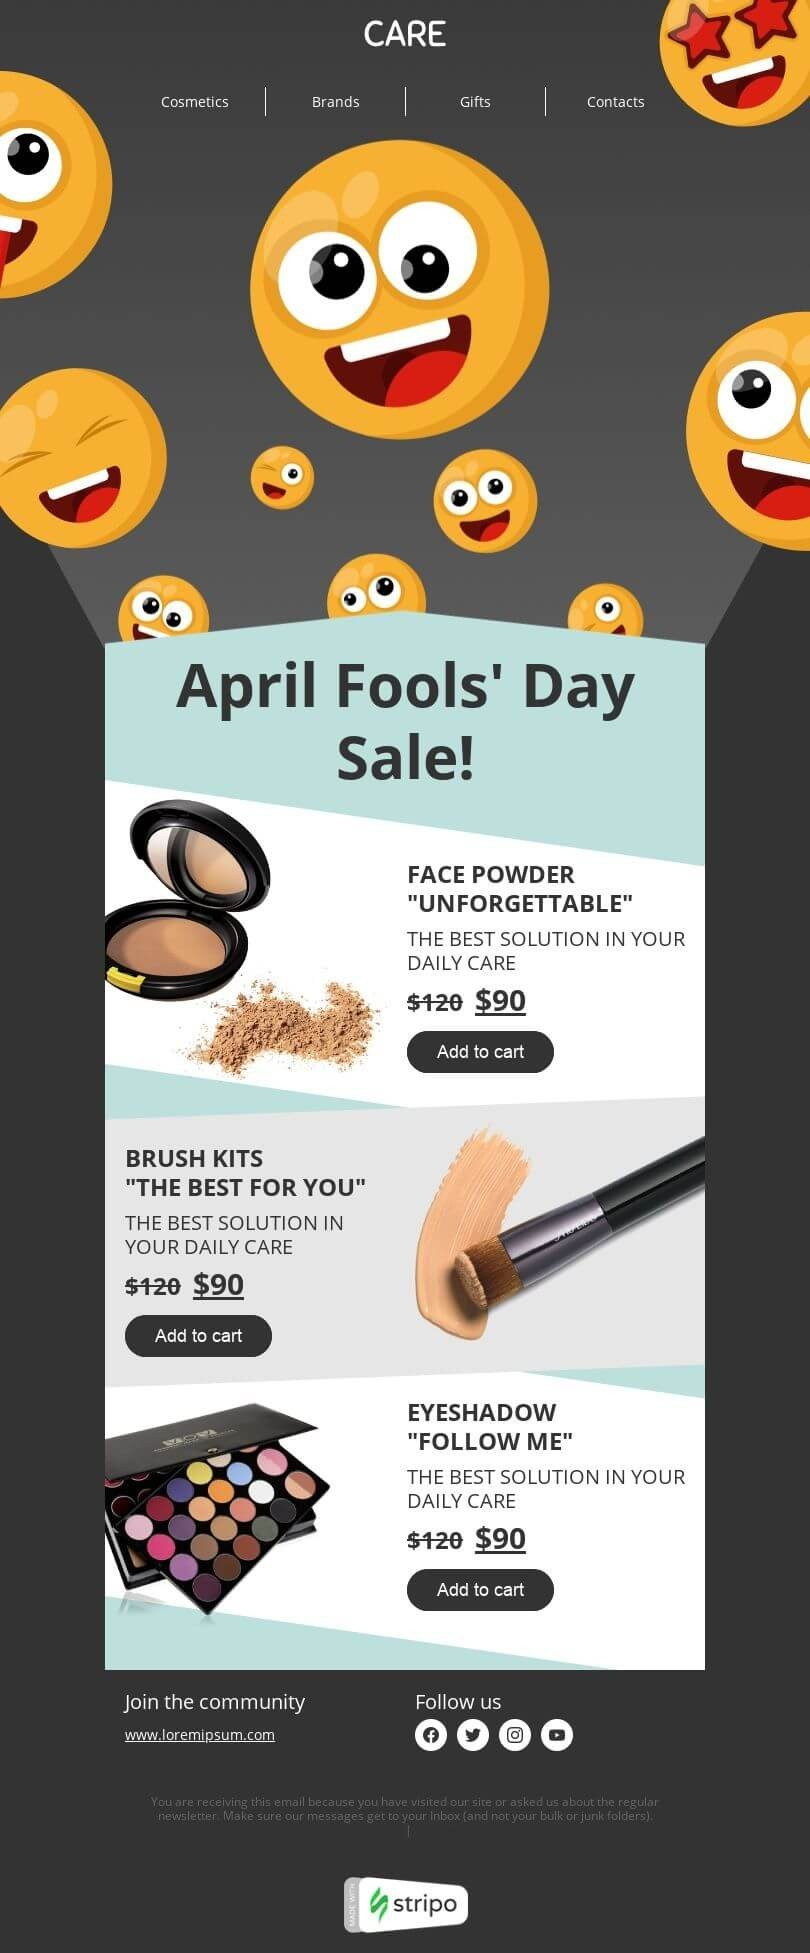 April Fools' Day Email Template «April Fool's Day sale» for Beauty & Personal Care industry desktop view